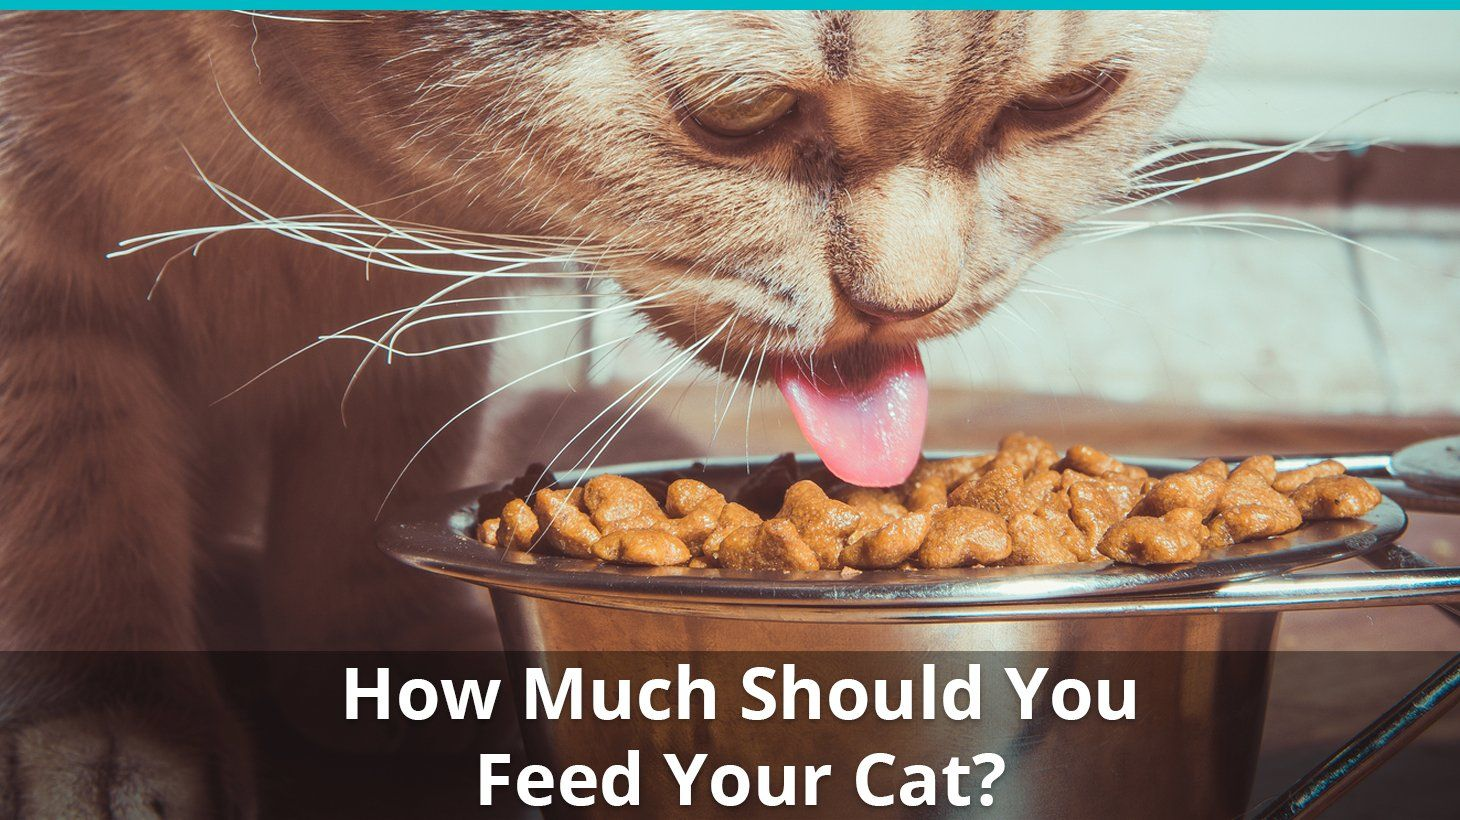 How Much Should I Feed My Cat The Cat Feeding Guide Cat Feeding Guide Cat Feeding Cat Food